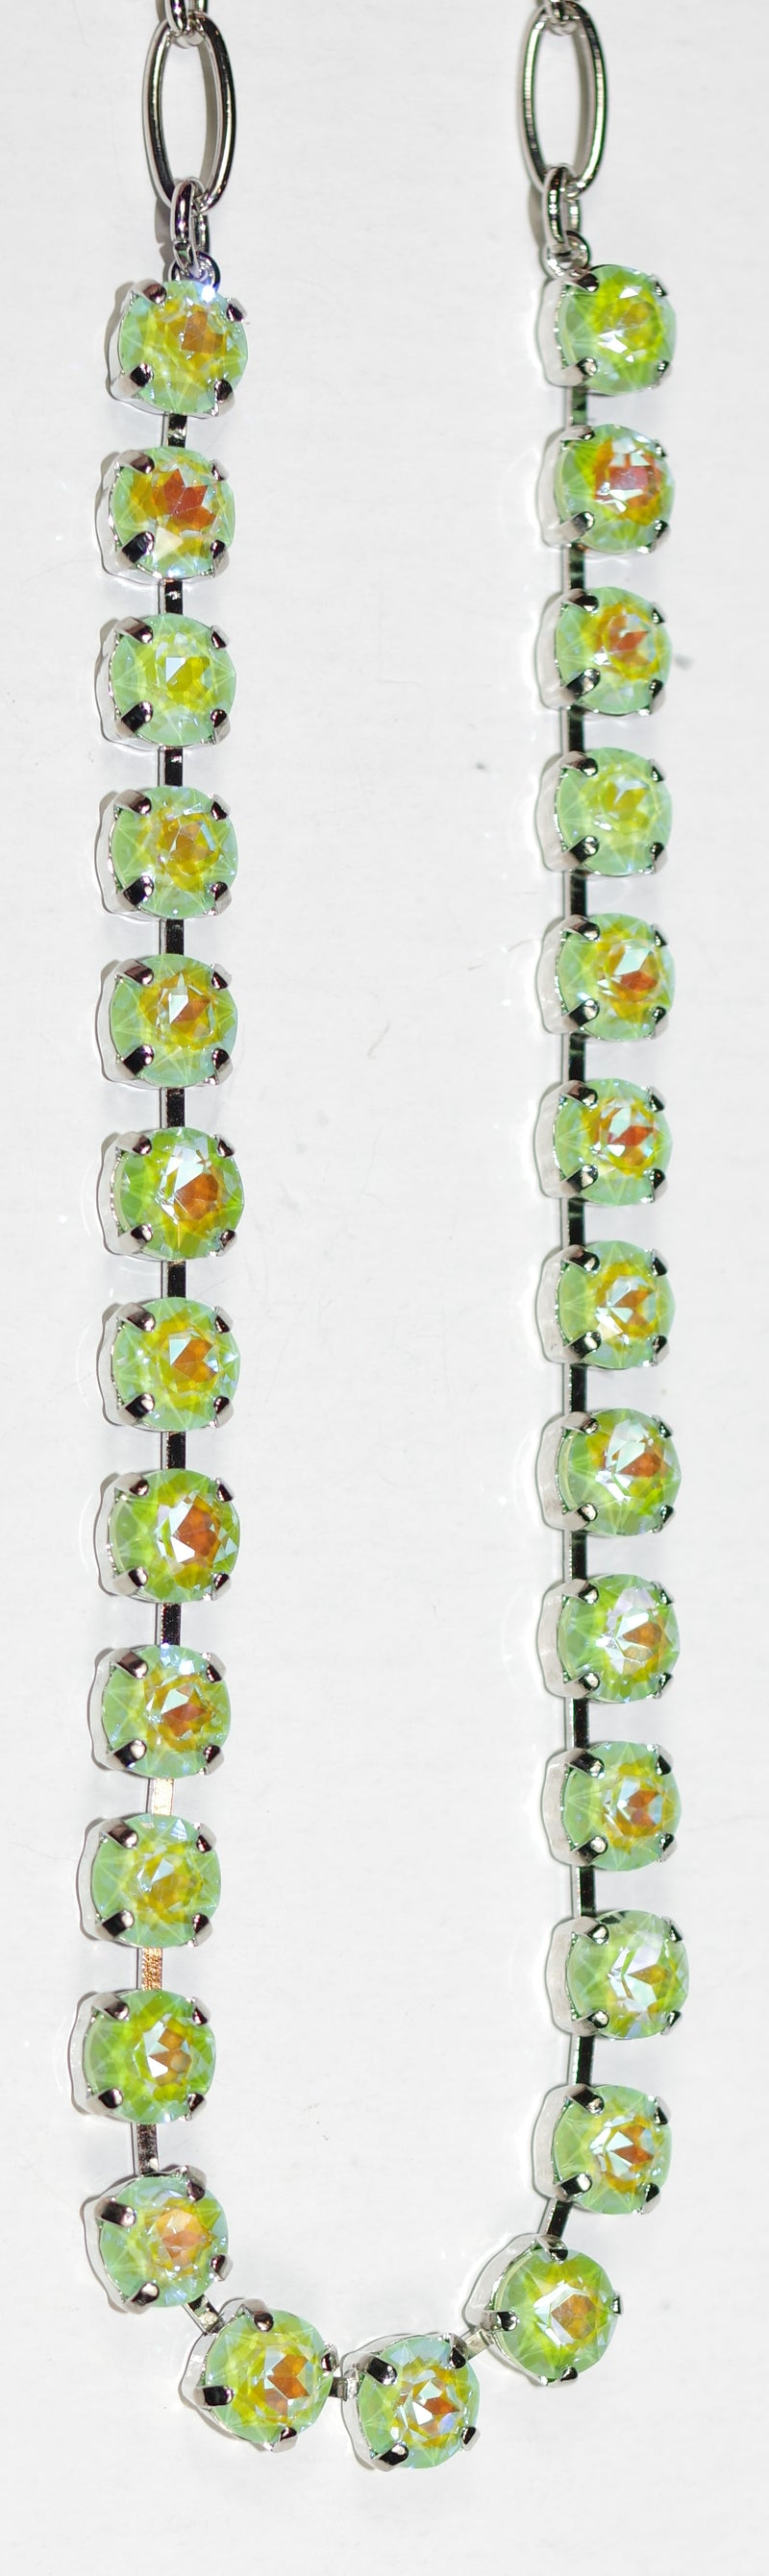 "MARIANA NECKLACE BETTE SUN KISSED: light green 1/4"" stones in silver rhodium setting, 17"" adjustable chain"